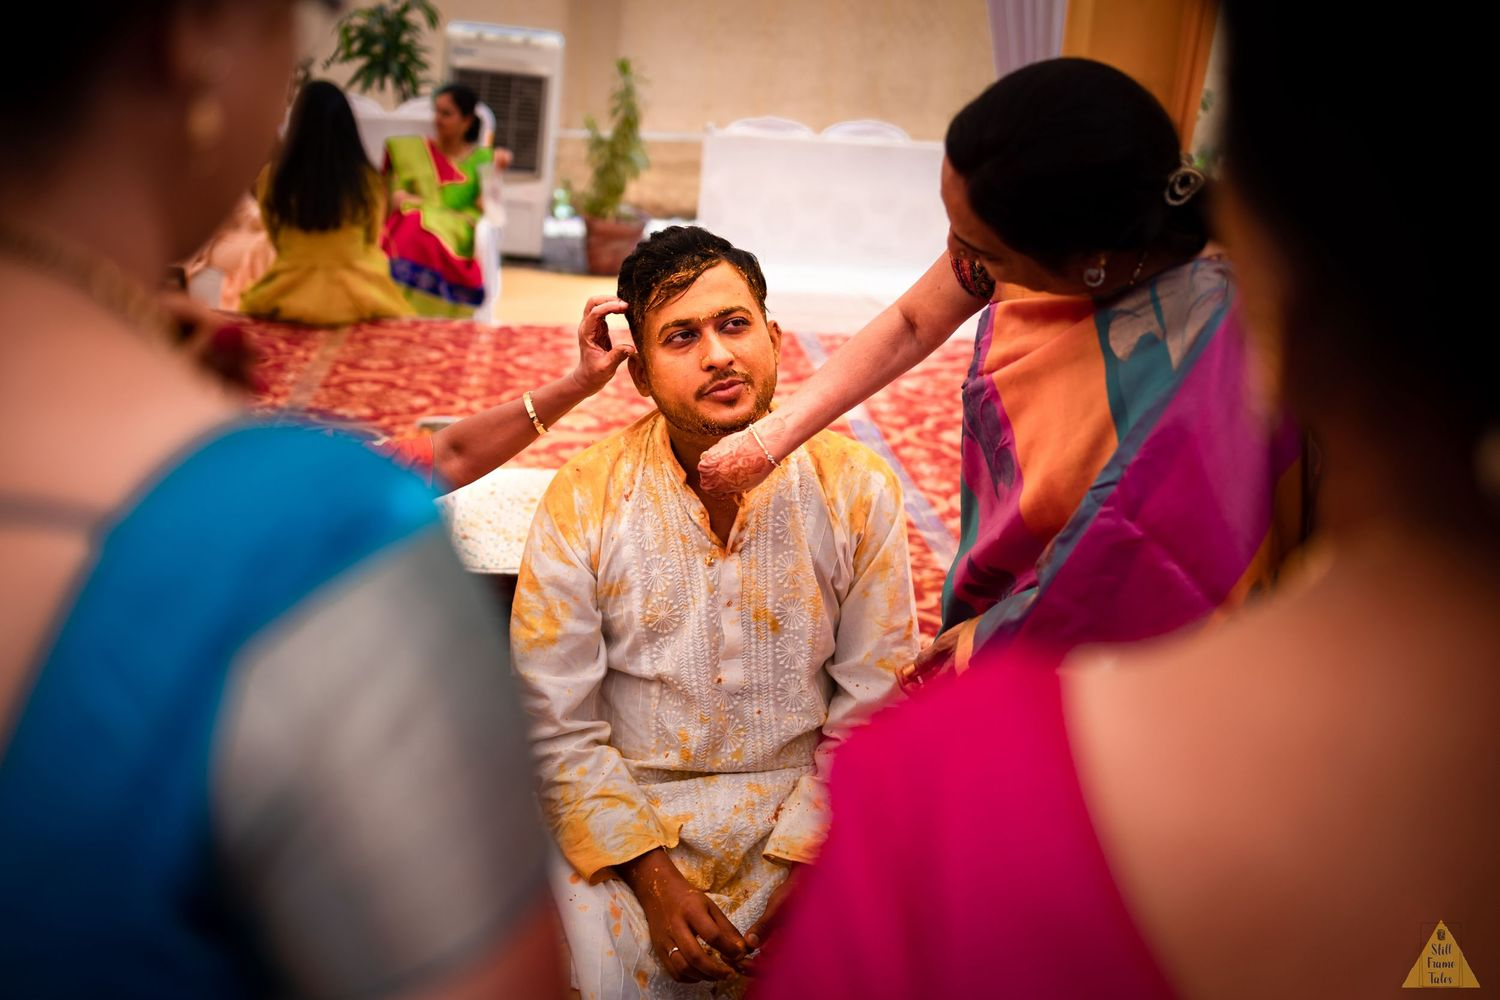 Relatives cleaning haldi from groom's face at a destination wedding ceremony